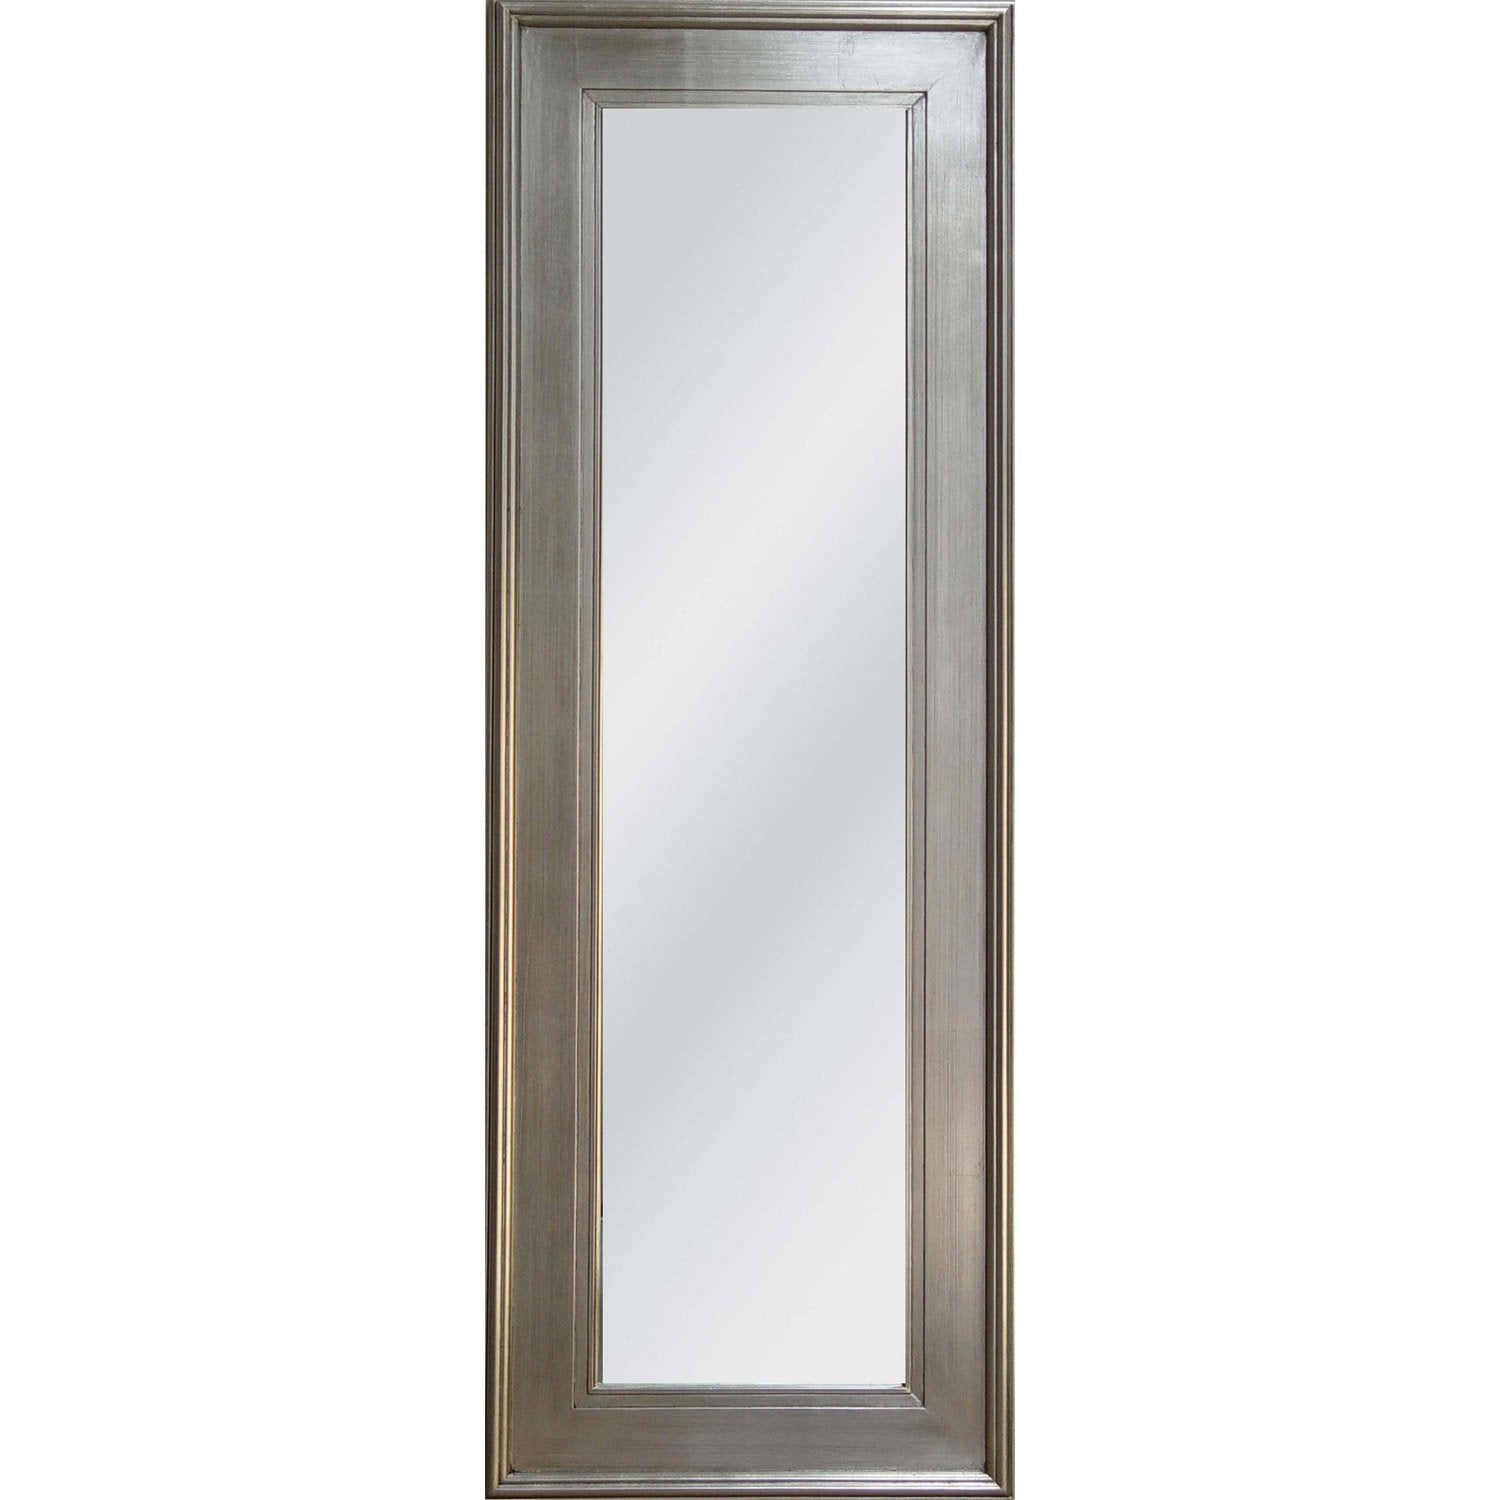 Miroir tisbury rectangle argent 50x140 cm leroy merlin for Miroir 50 x 70 leroy merlin